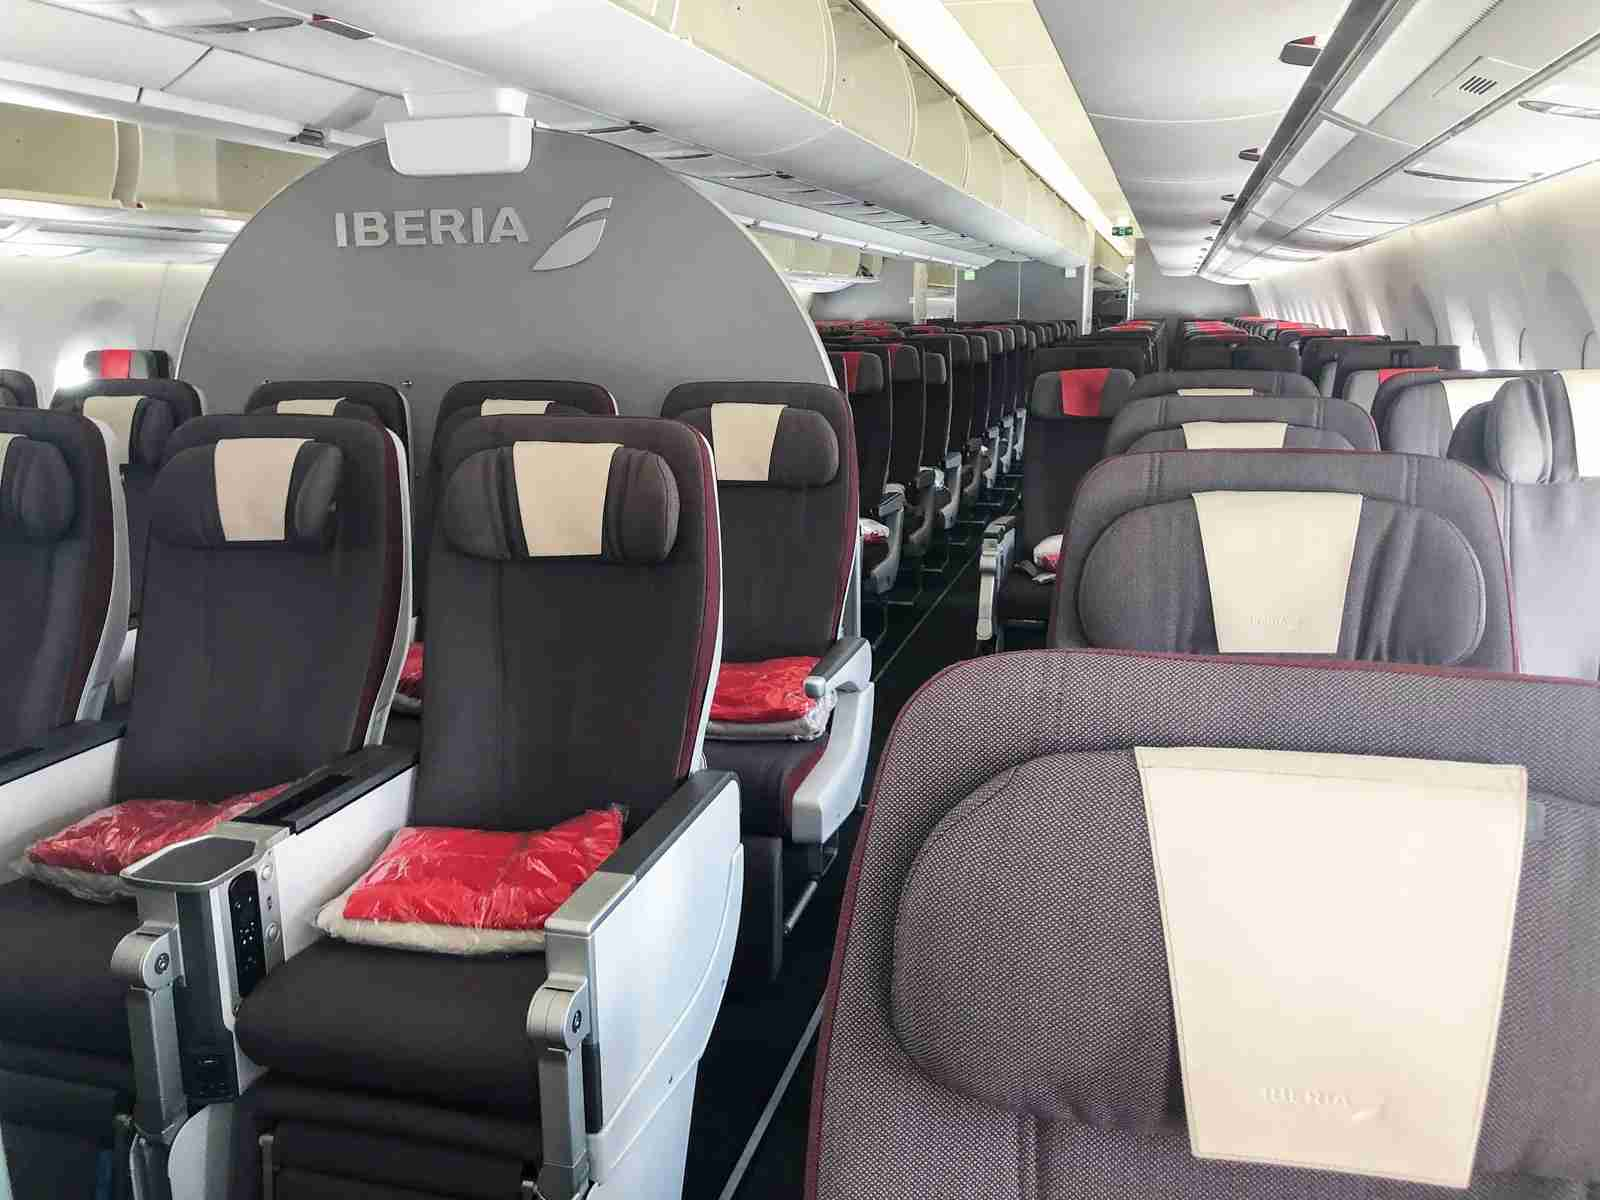 Premium Economy class on an Iberia A350 (Photo by Lori Zaino/TPG)